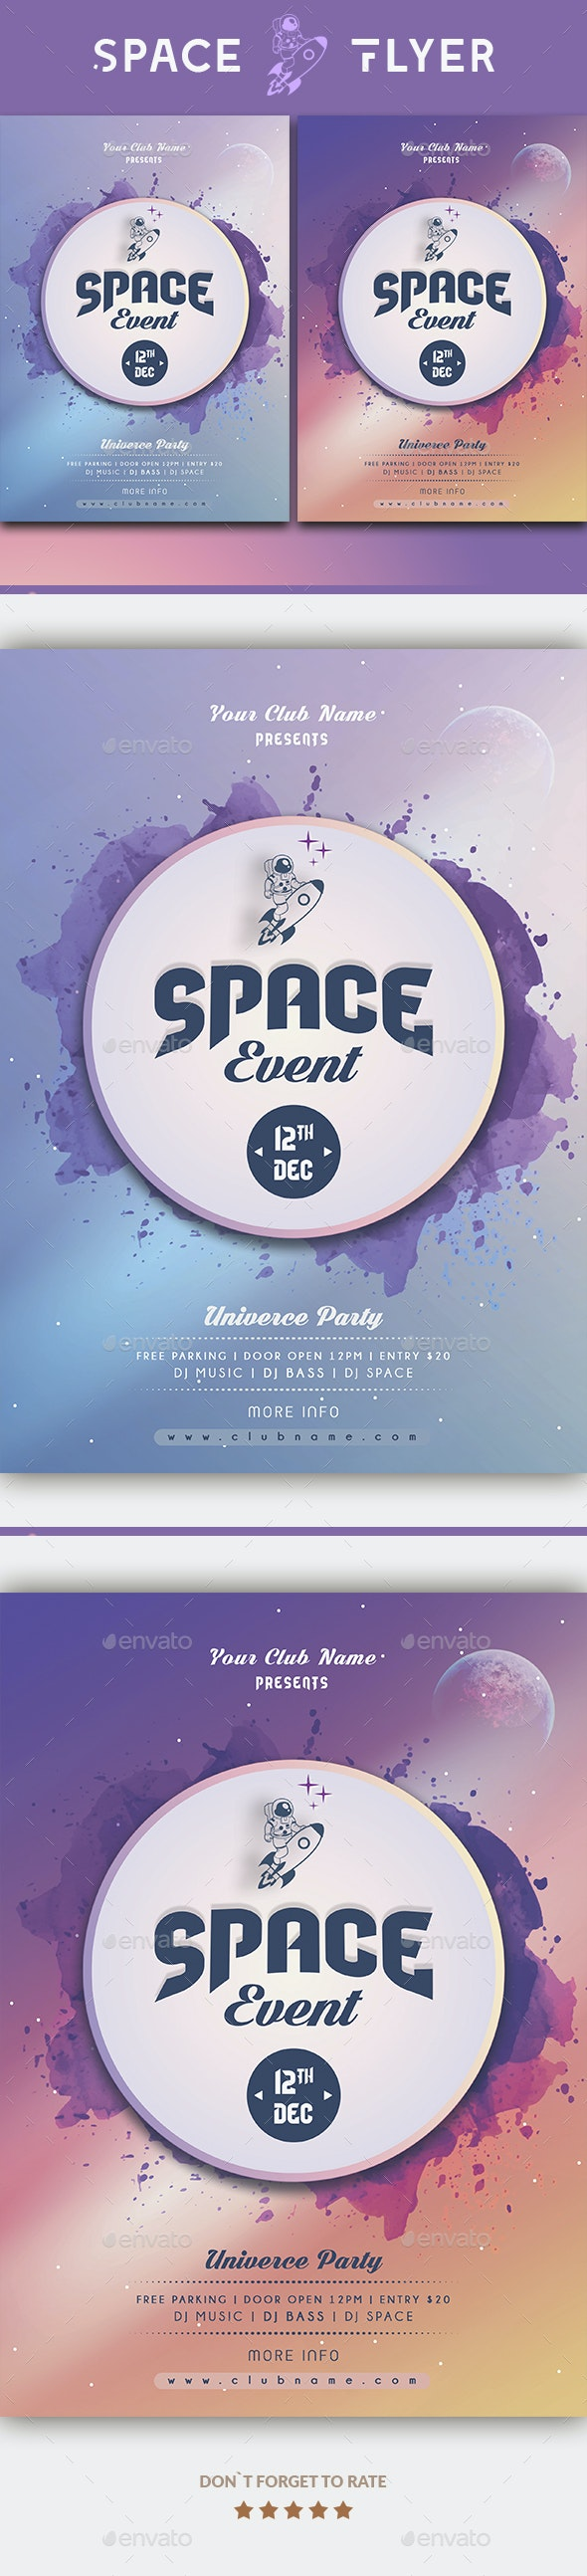 Space Event Flyer - Events Flyers